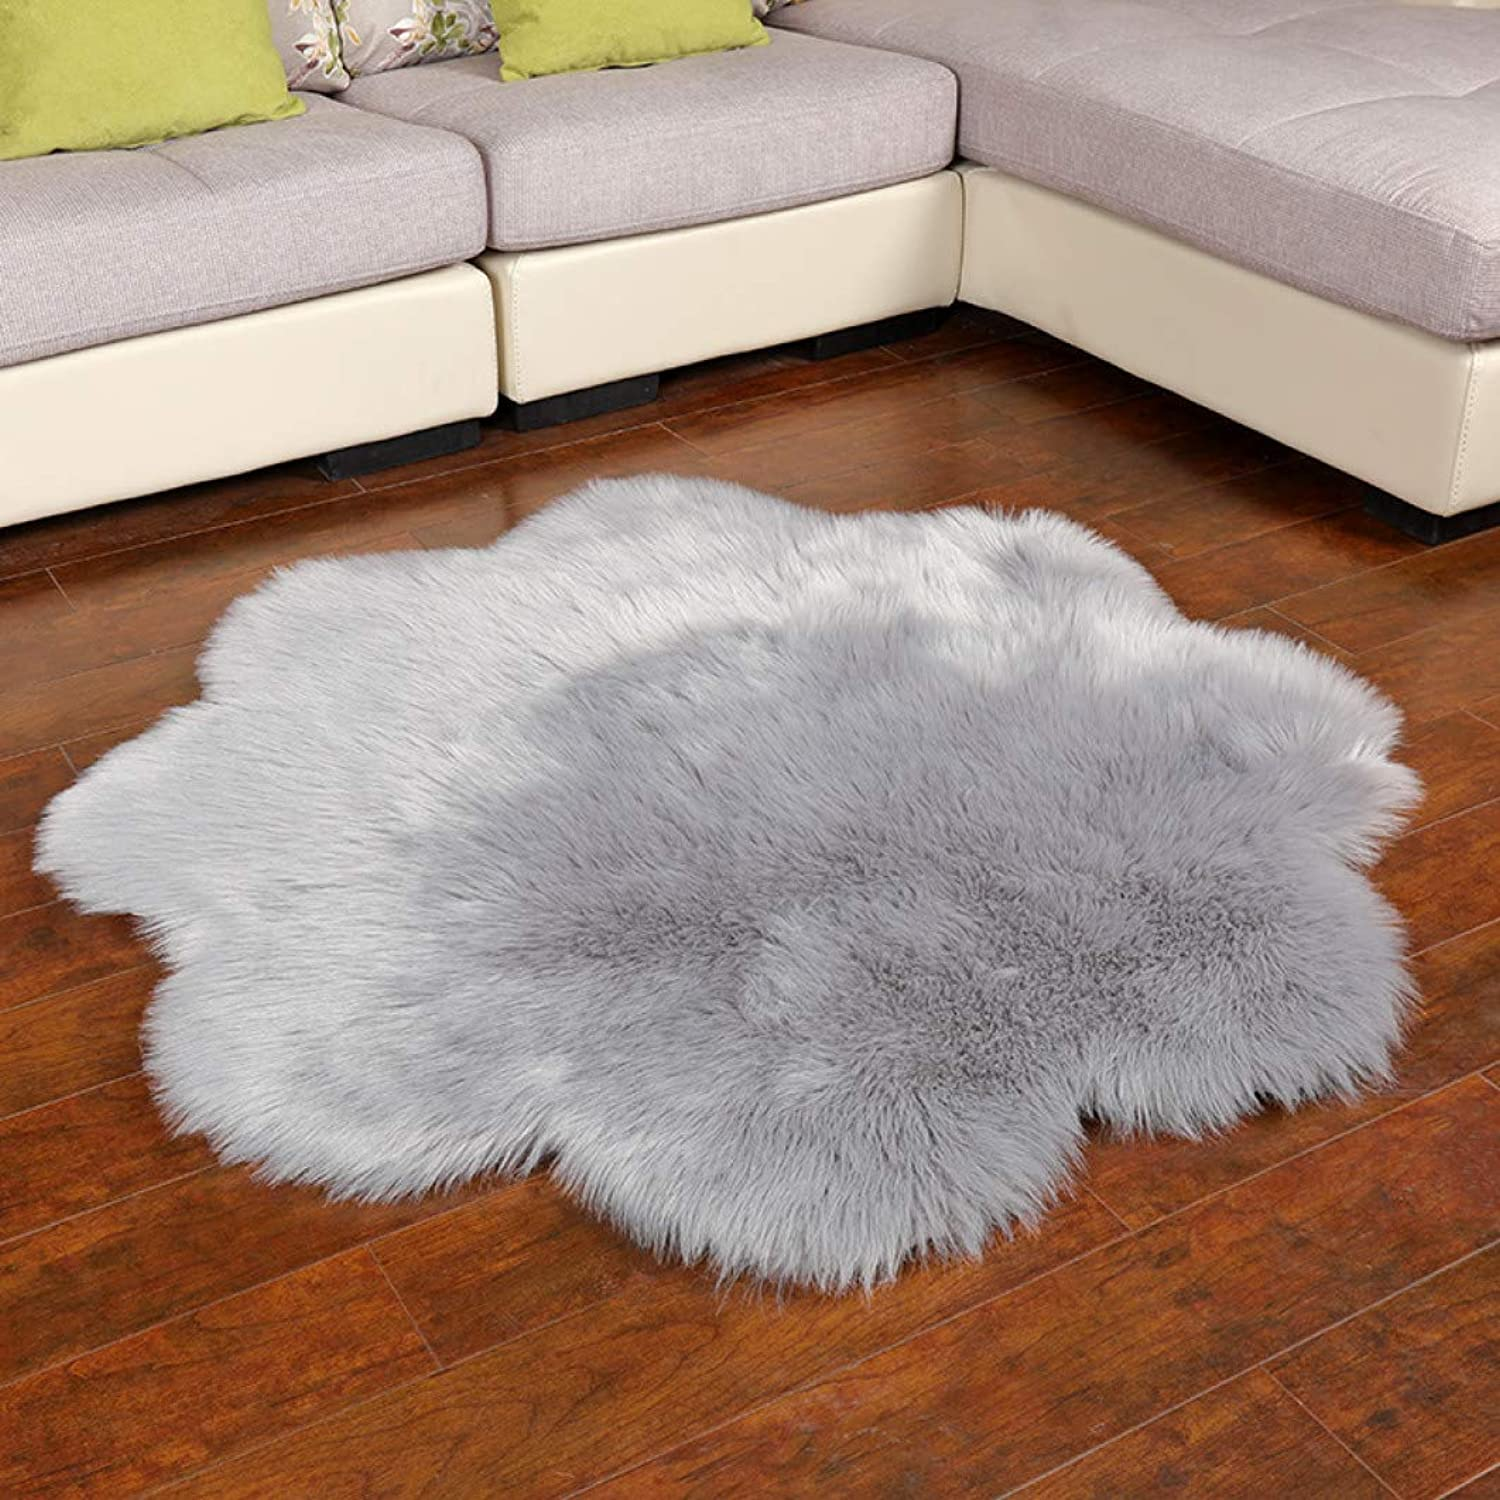 Kievil Carpets Faux Fur Rug Living Room Fluffy Rug Hypo-allergenic and Non-Toxic Sheepskin Flower Shape Rug